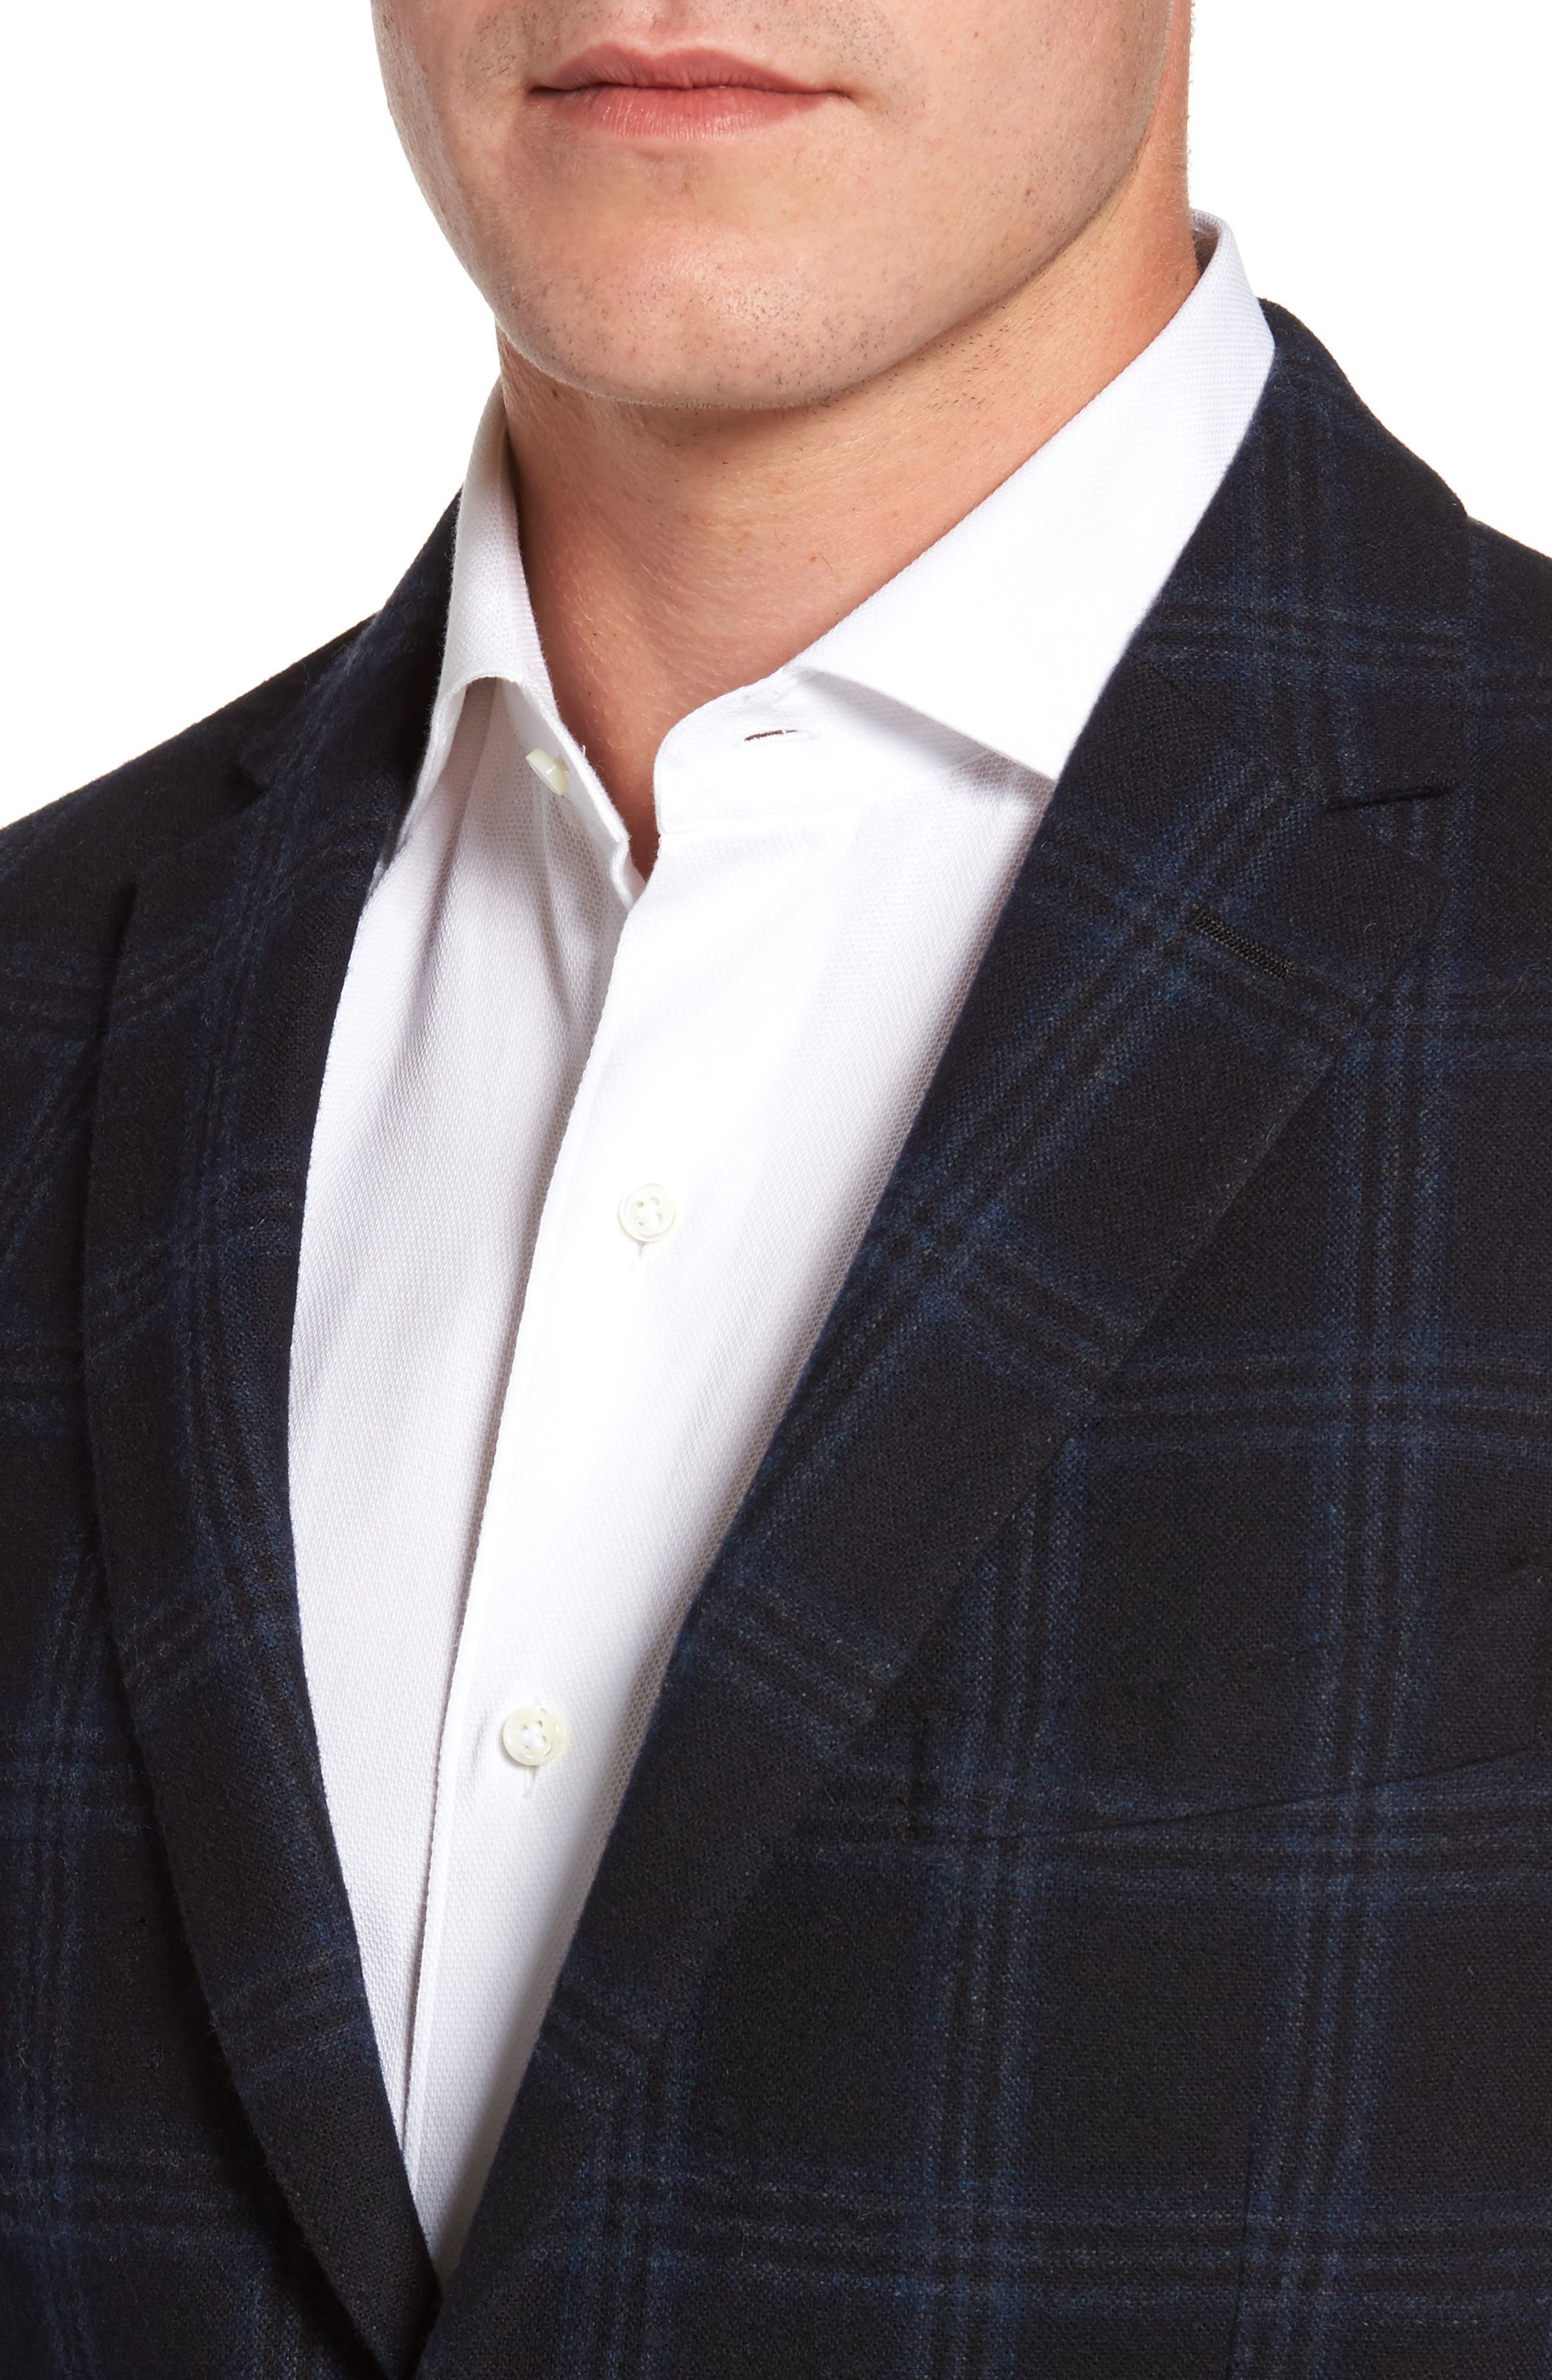 Classic Fit Windowpane Wool & Cashmere Jersey Sport Coat,                             Alternate thumbnail 4, color,                             001